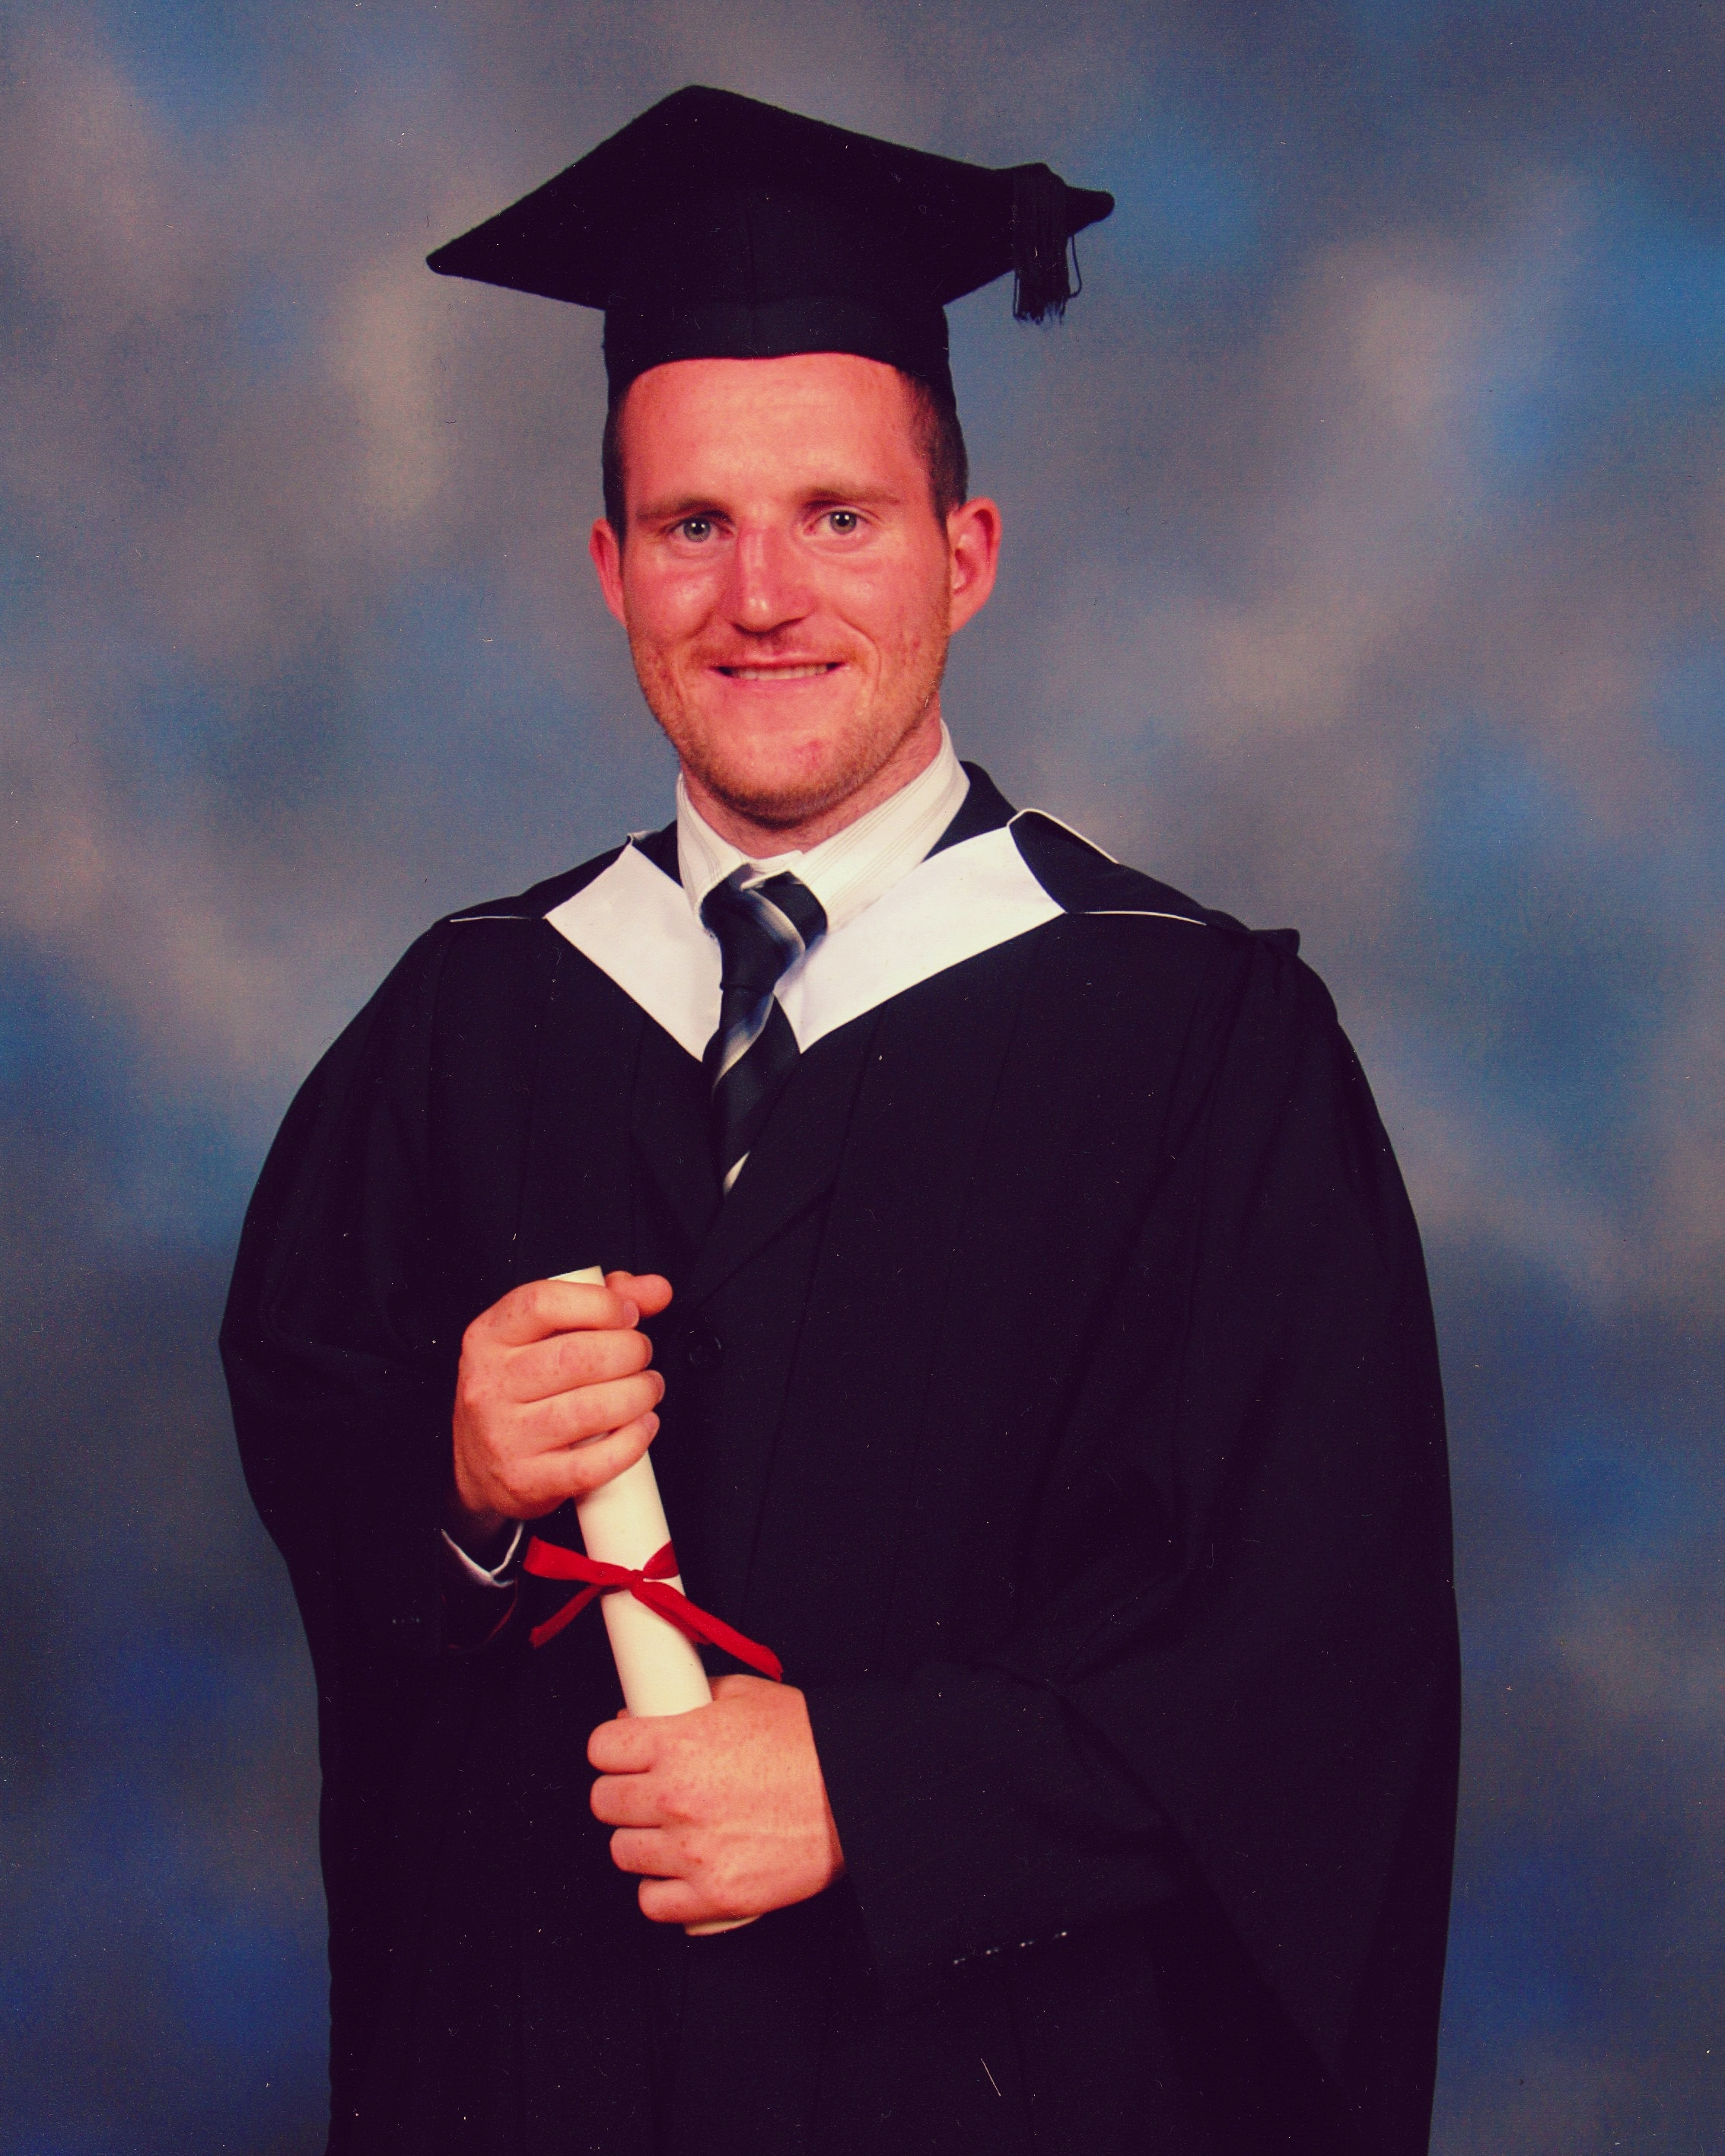 conor-graduates-as-architectural-technician-maker-gents.jpg